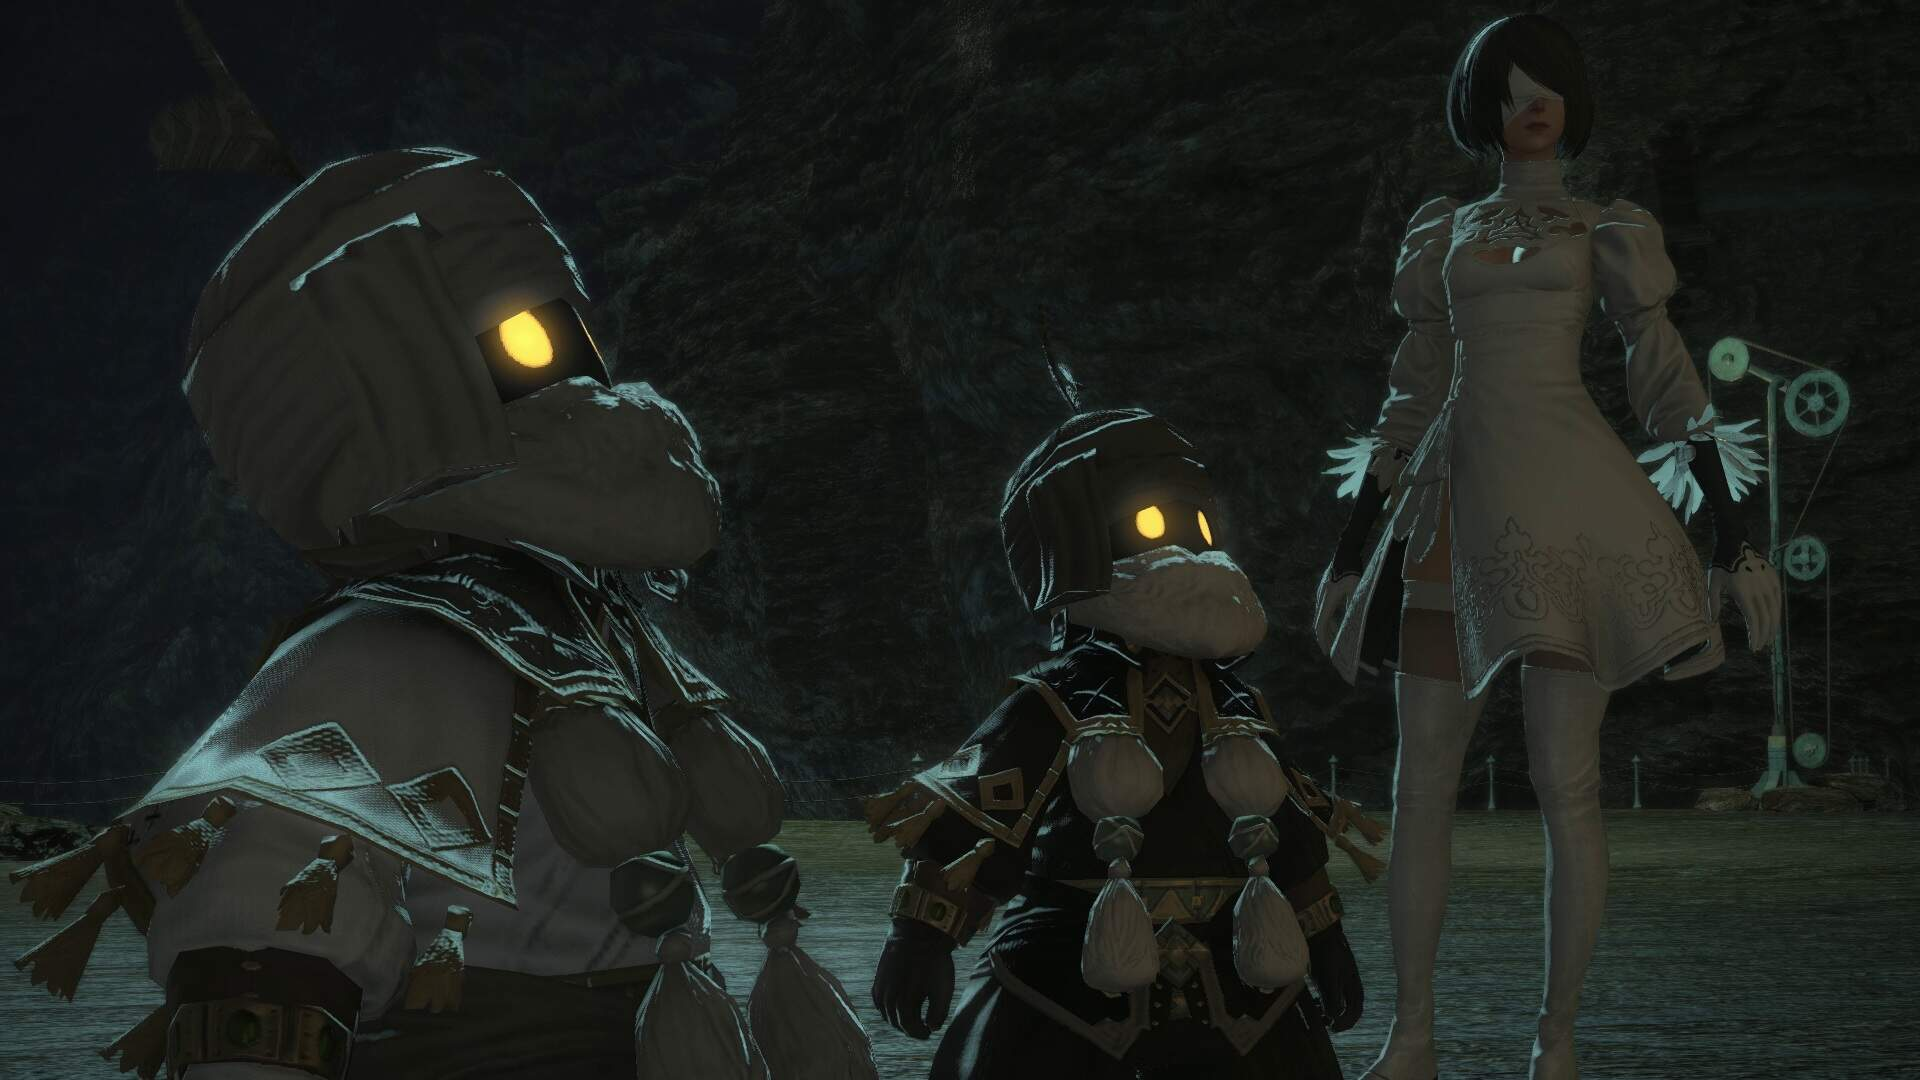 Your Final Fantasy 14 Landlord Won't Evict You Because of Coronavirus